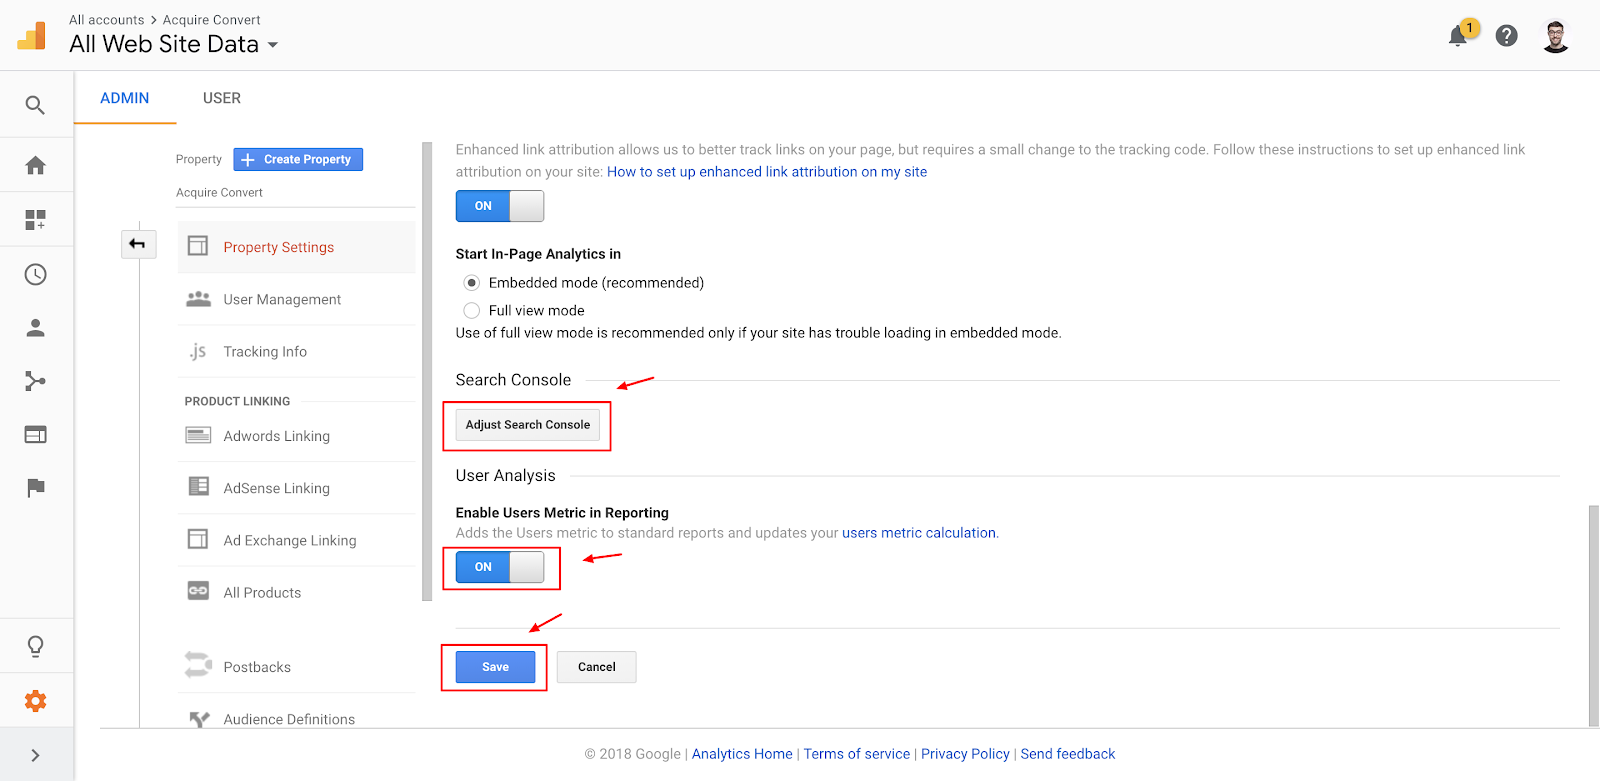 Screenshot showing a settings page on the Google Analytics dashboard